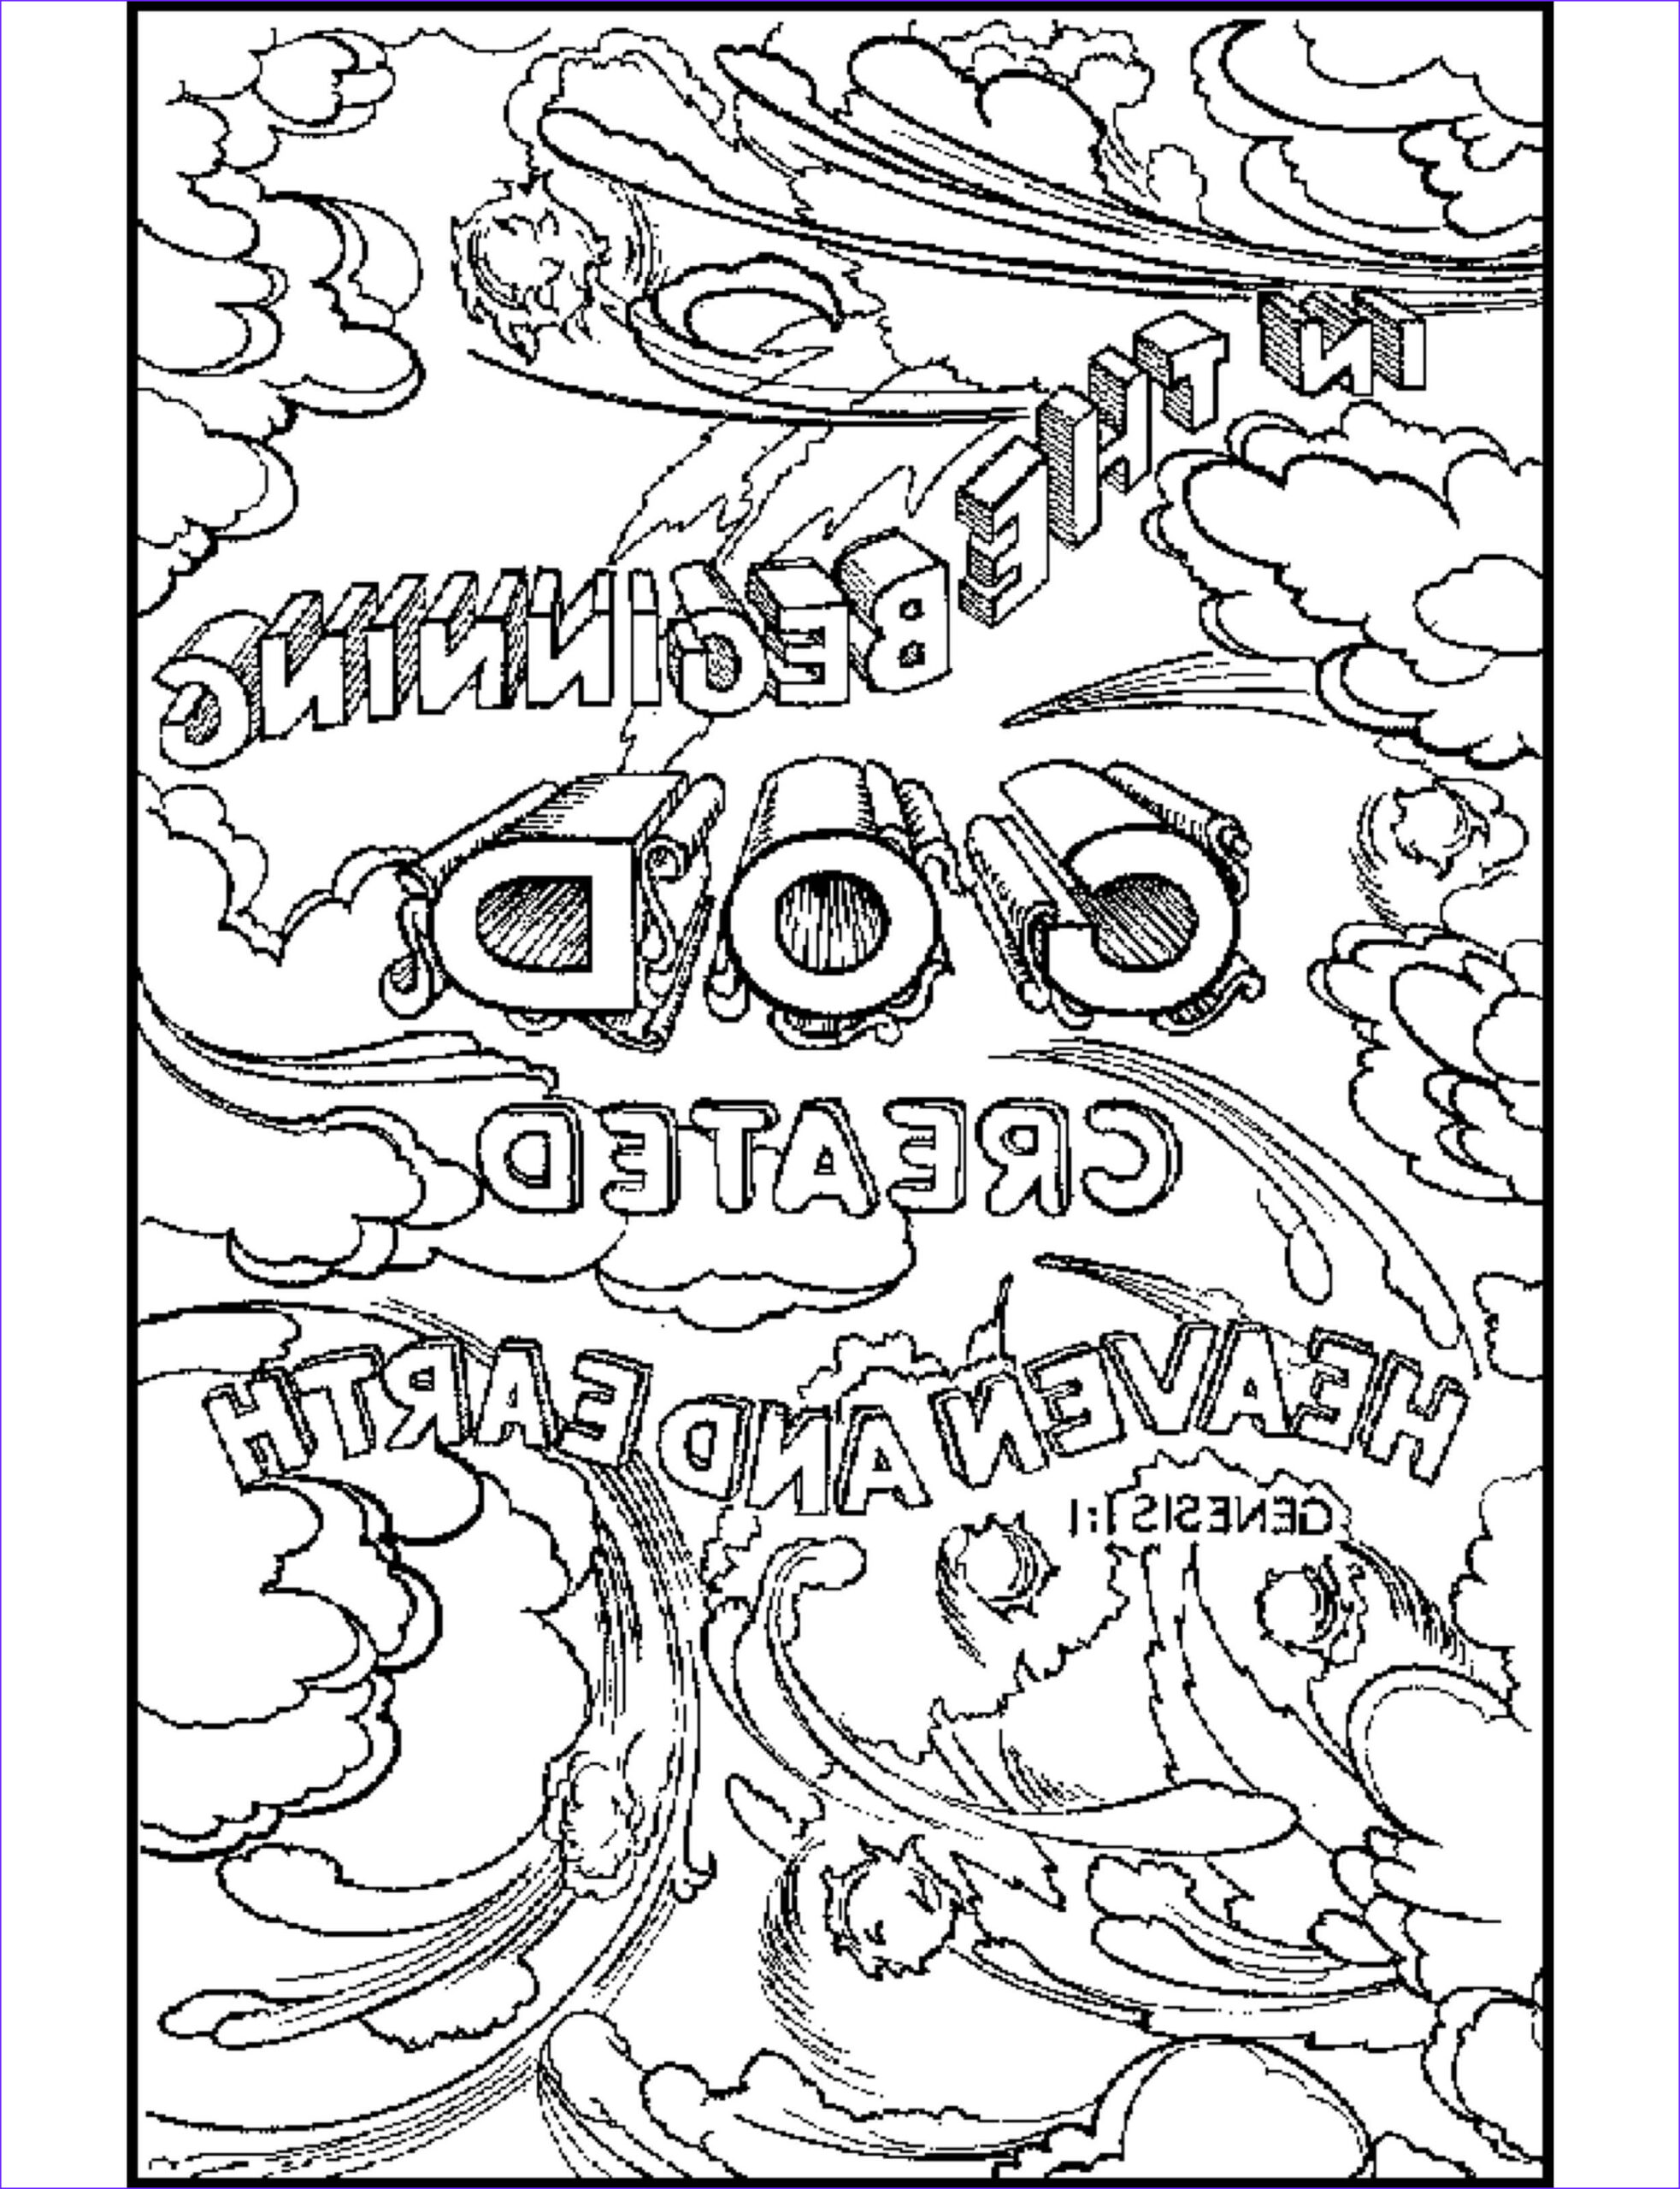 abda acts art publishing coloring pages